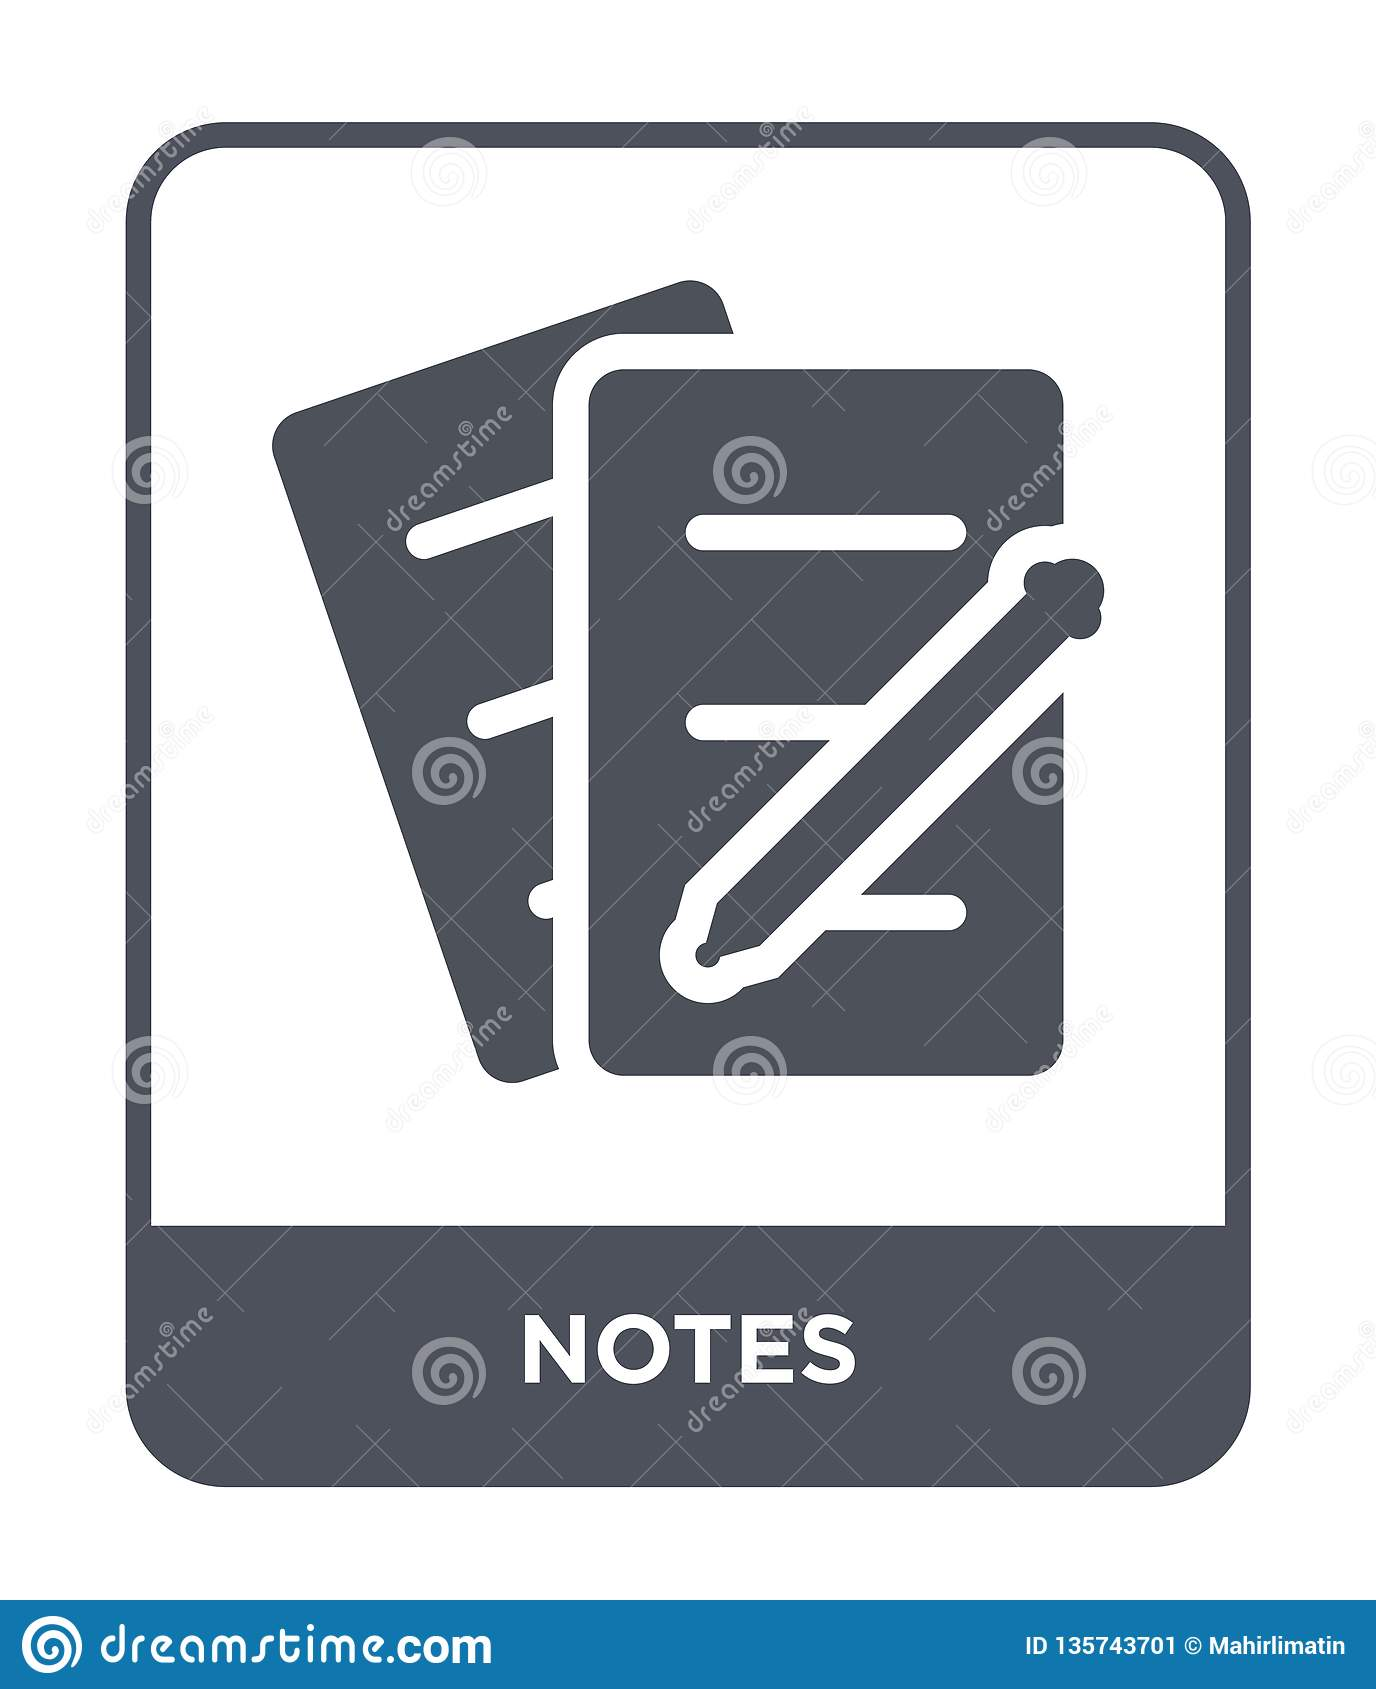 notes icon in trendy design style. notes icon isolated on white background. notes vector icon simple and modern flat symbol for